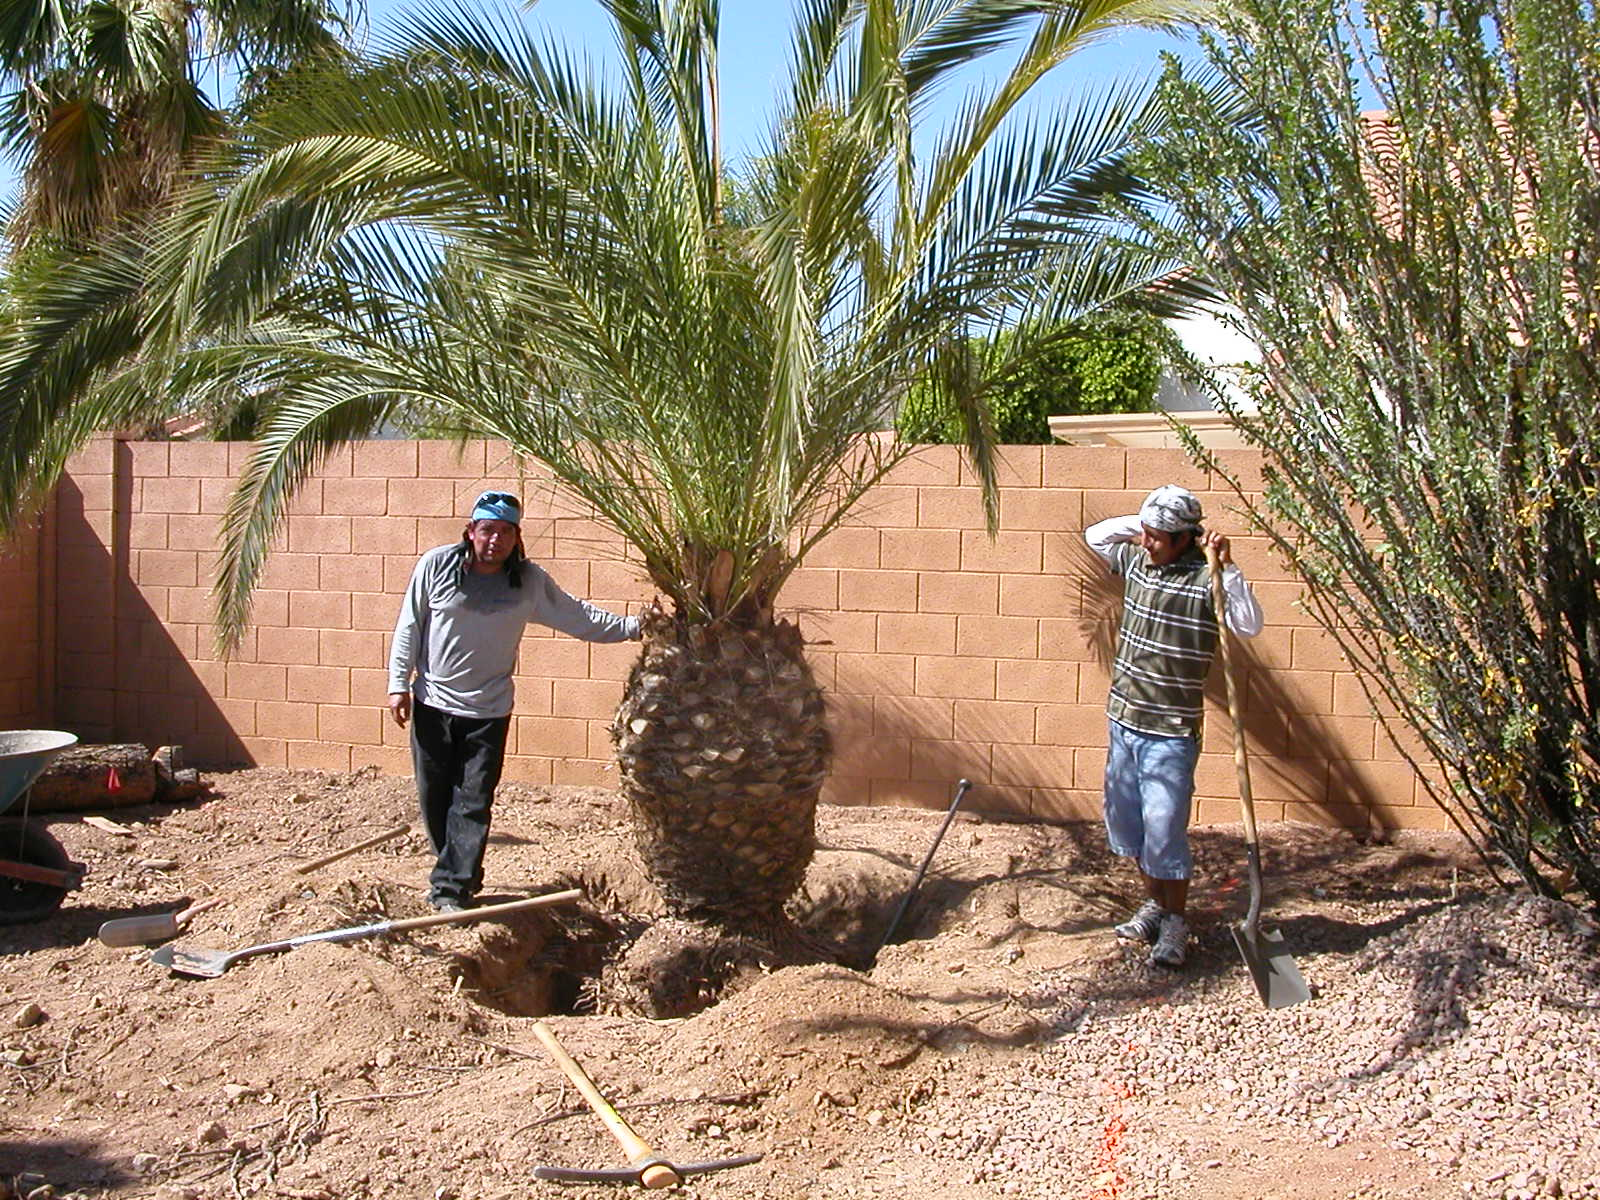 Excavating the canary palm